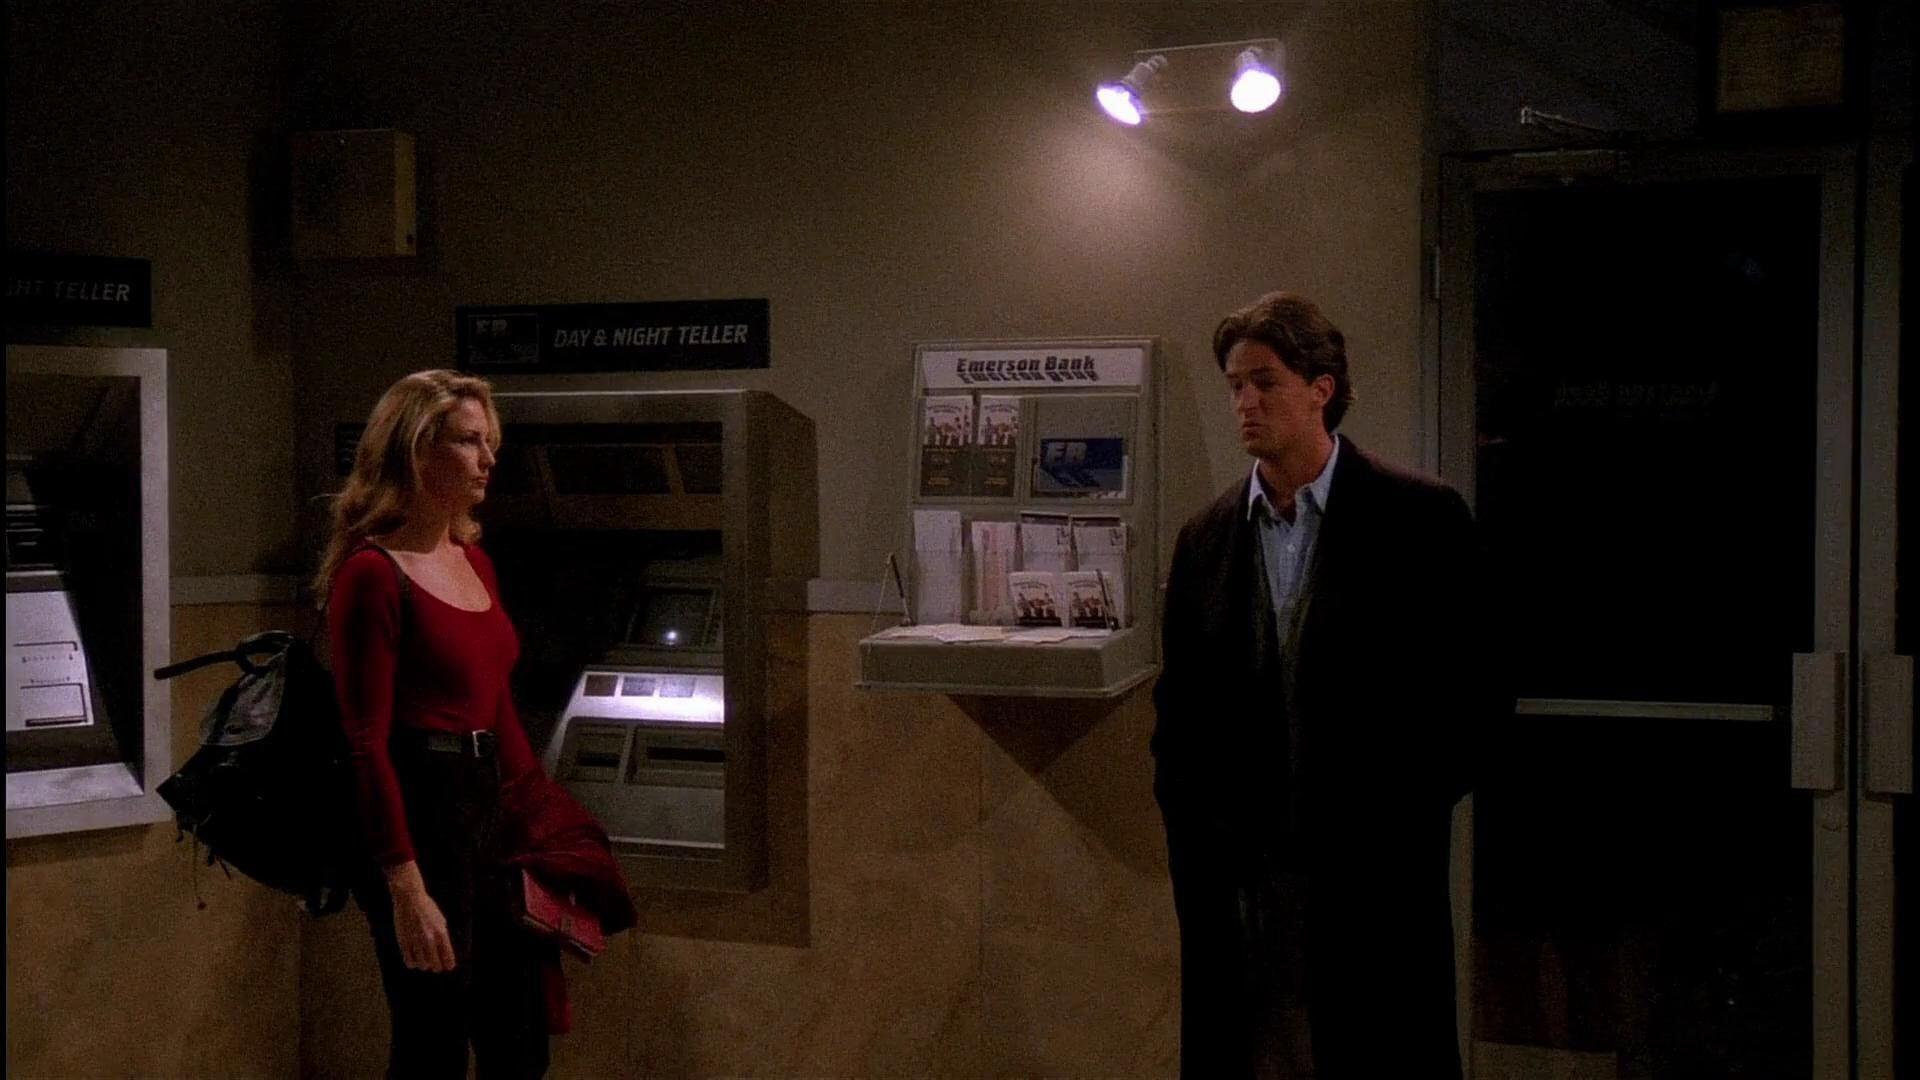 During the blackout, who was Chandler locked in with at the ATM Vestibule?